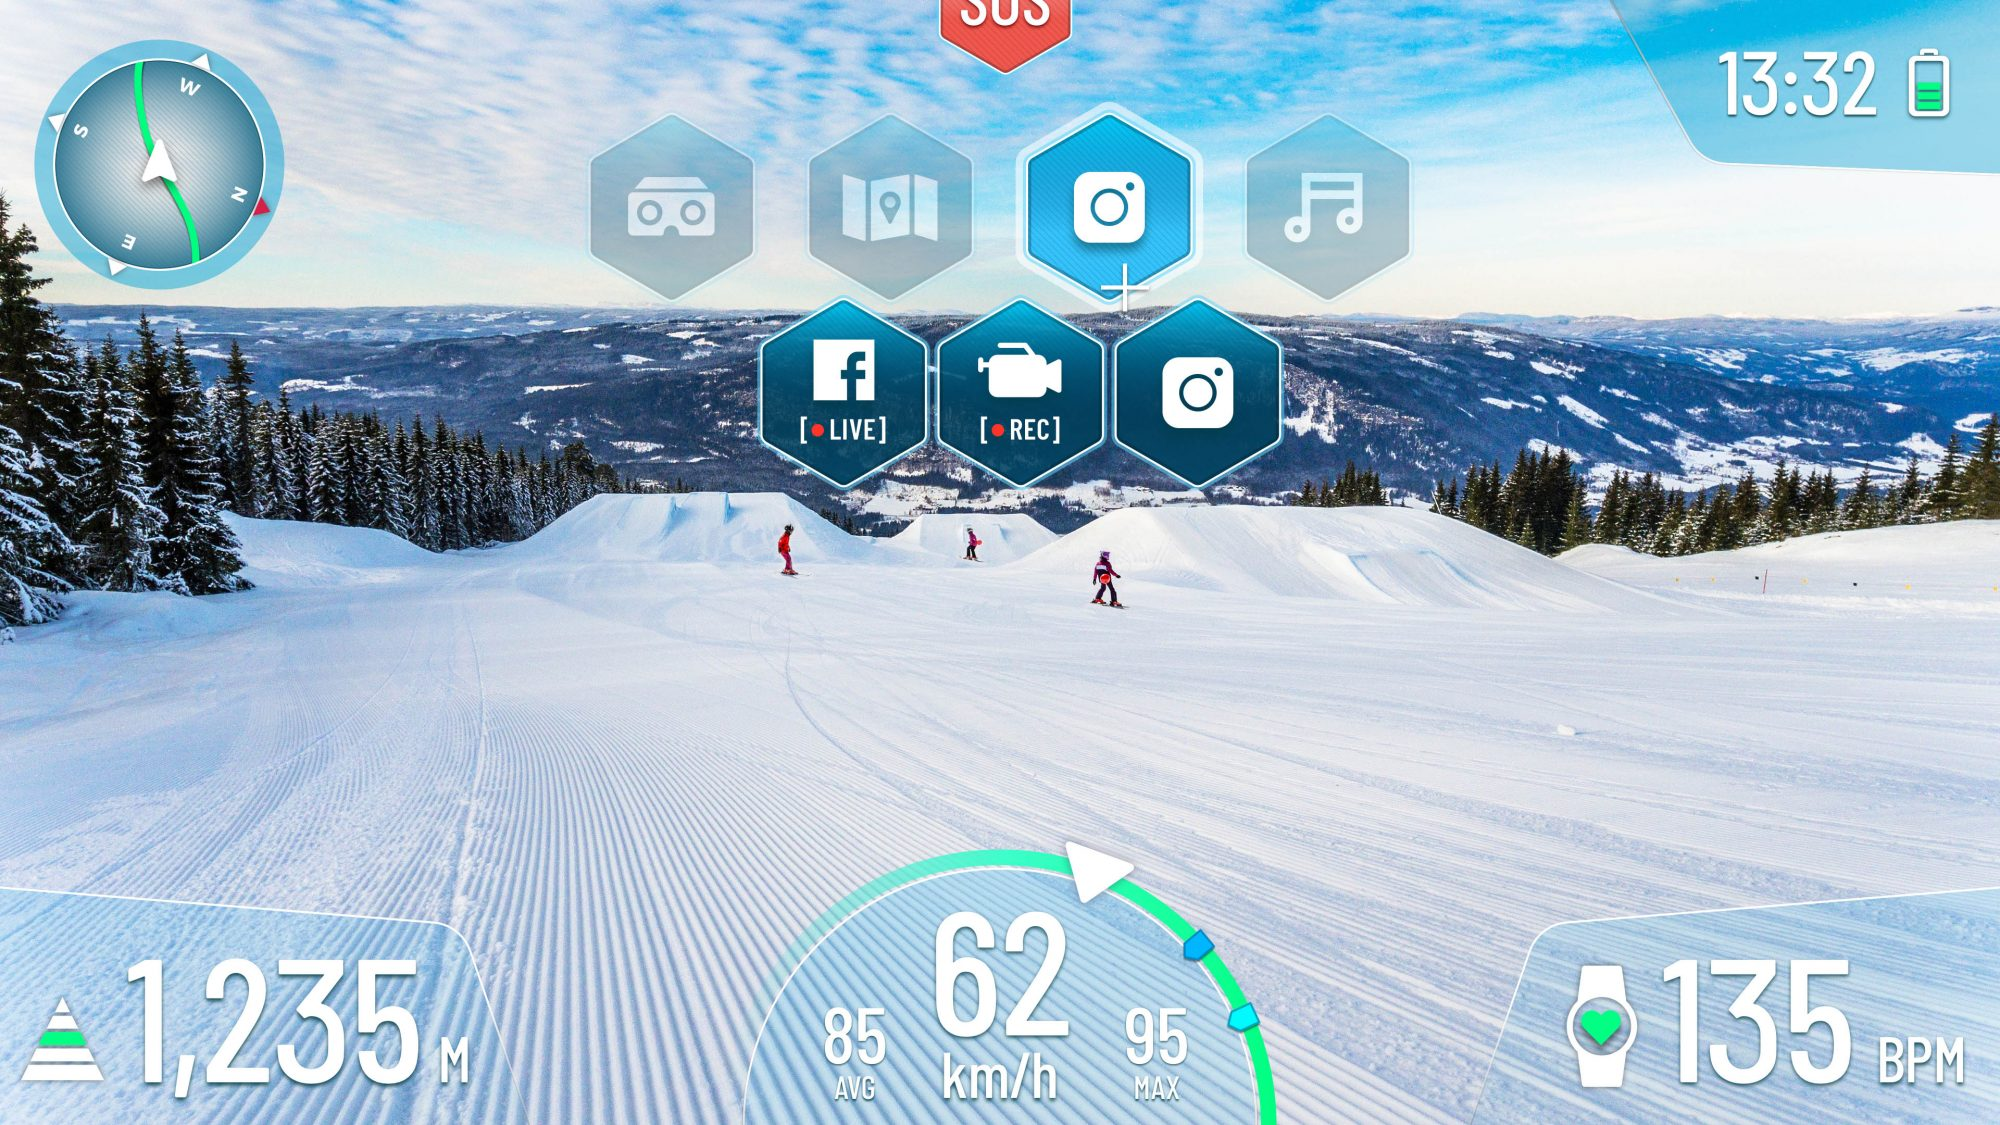 On the visor of the Mohawk helmet, the user can call up various visual data such as speed, altitude and a navigation system. A glance into the future: First ski and snowboard helmet with Augmented Reality is being tested in Schladming-Dachstein.